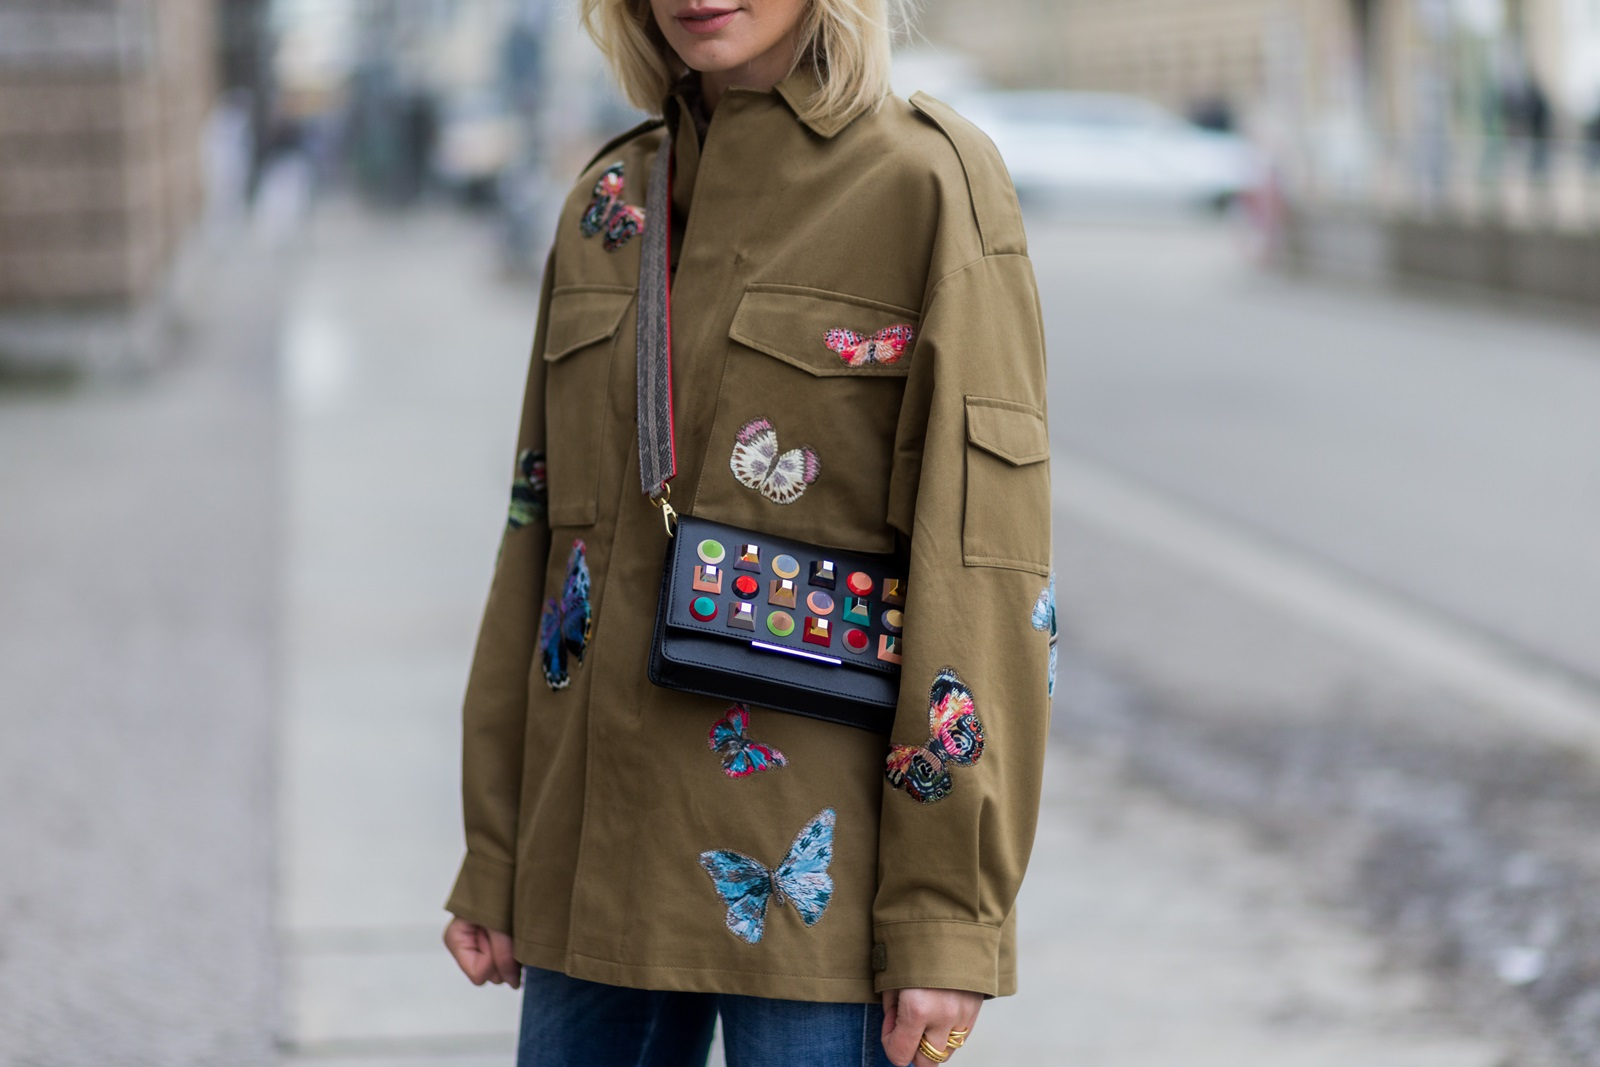 BERLIN, GERMANY - JANUARY 19: Lisa Hahnbueck wearing Valentino Butterfly Printed Cotton Jacket, Closed Jeans, Zara Colored Over Knee Boots, Fendi Clutch Bag with colored studs, MCM Phyton Strap during the Mercedes-Benz Fashion Week Berlin A/W 2017 at Kaufhaus Jandorf on January 19, 2017 in Berlin, Germany. (Photo by Christian Vierig/Getty Images) *** Local Caption *** Lisa Hahnbueck